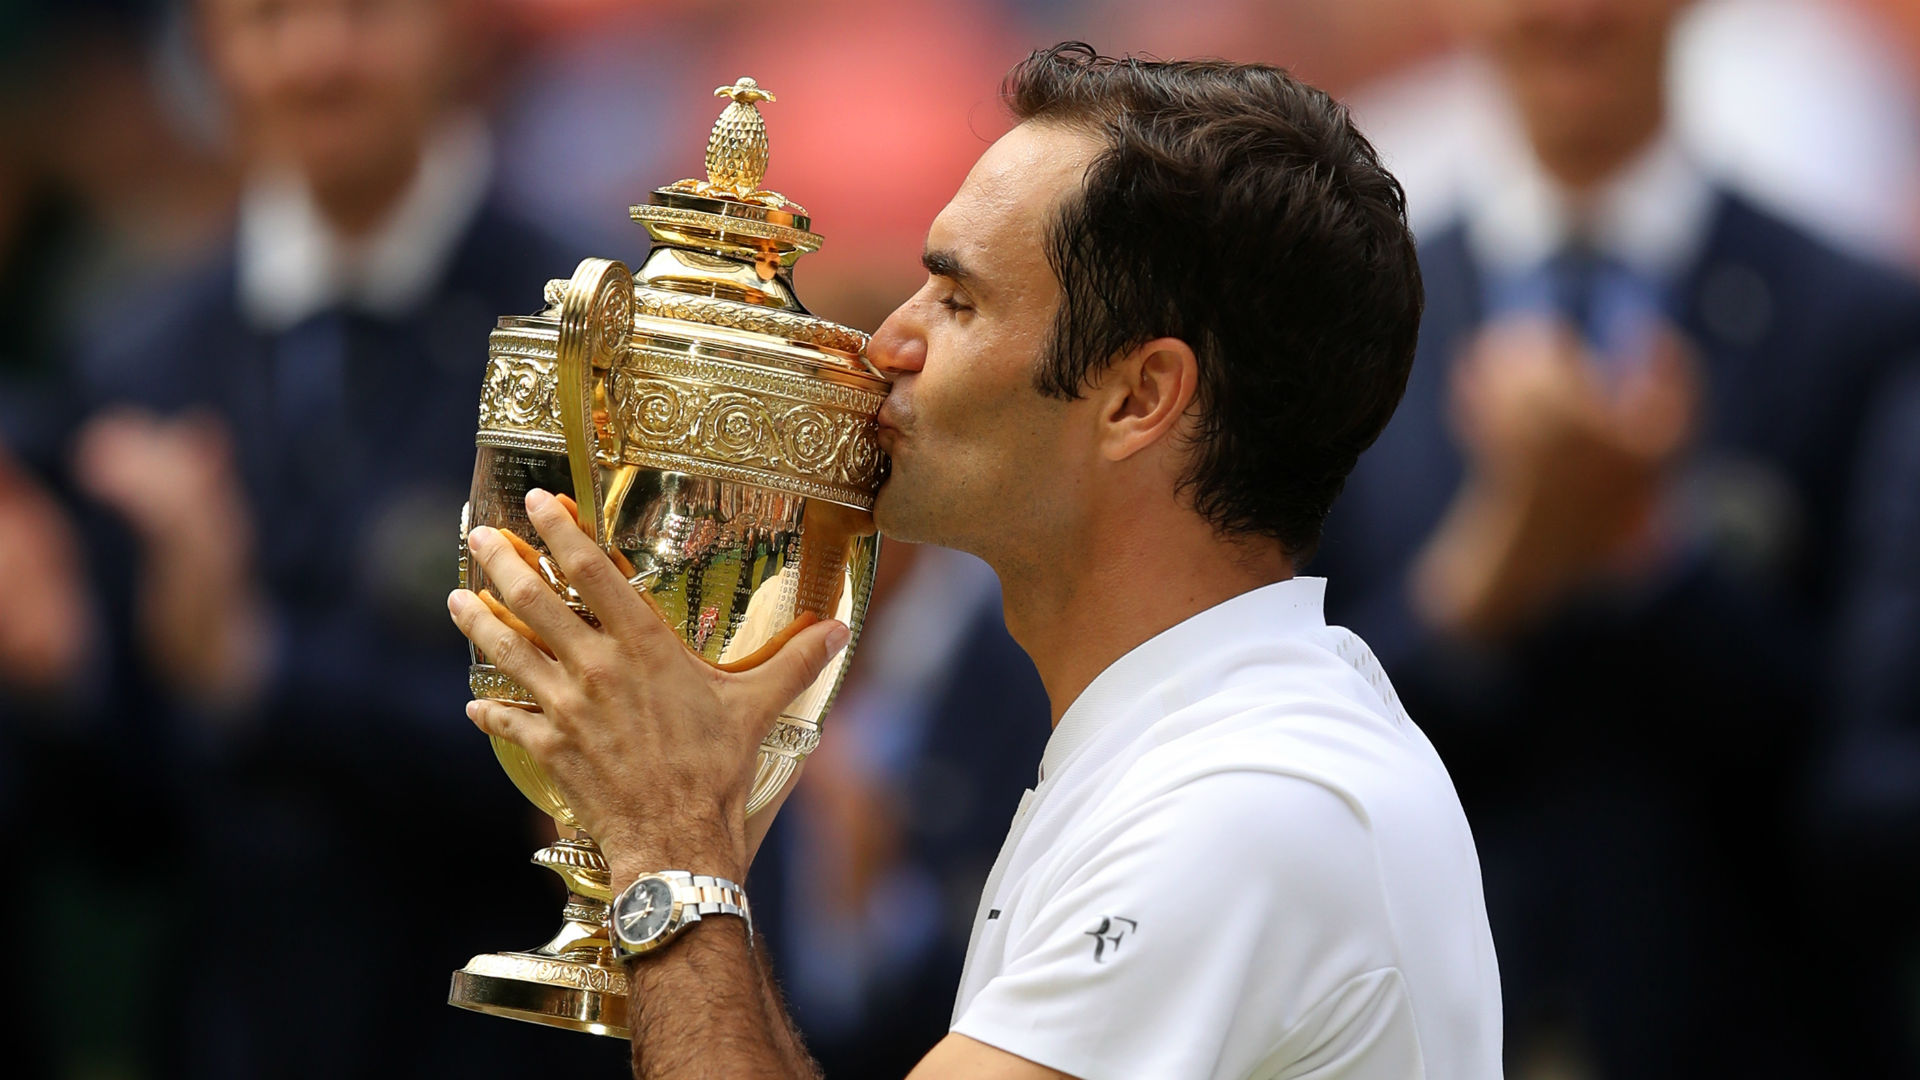 Michael Stich believes another Wimbledon triumph would give Roger Federer a perfect moment to bow out of professional tennis.